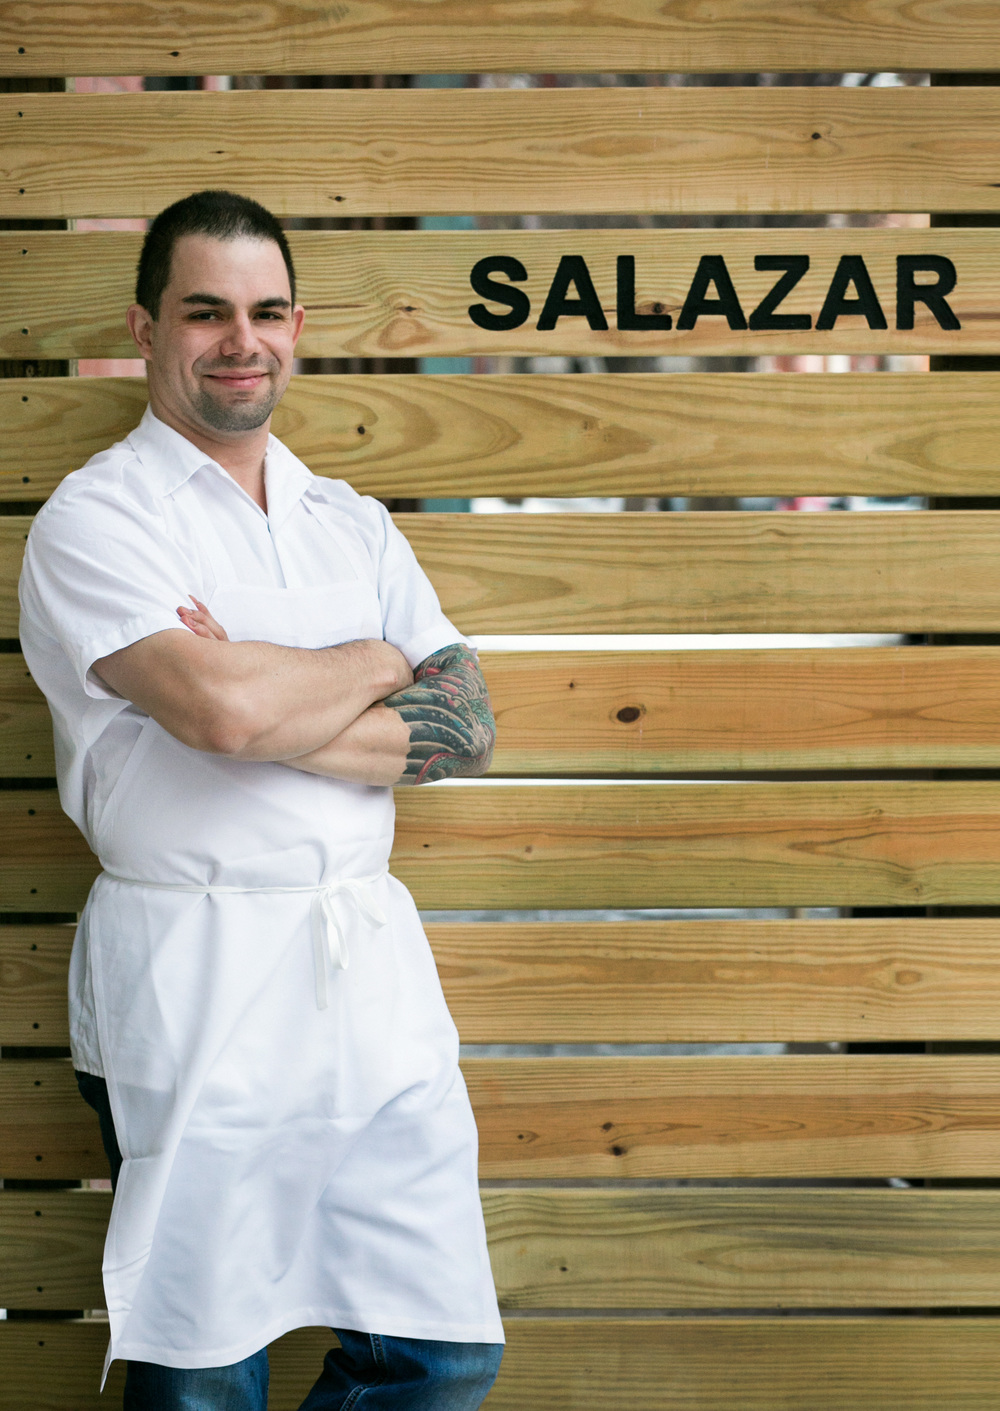 "Located in OTR, this New American restaurant created by Chef Jose Salazar features a fresh, seasonally inspired menu with local ingredients as well as craft beers, cocktails and wines. As Gina shared in a recent blog post, ""Chef Salazar has created a warm, embracing environment with the timeless, neighborhood vibe of an establishment that wears the comfort of having been around for years, as well as, of course, serving up quality, flavorful, beautifully prepared food."""